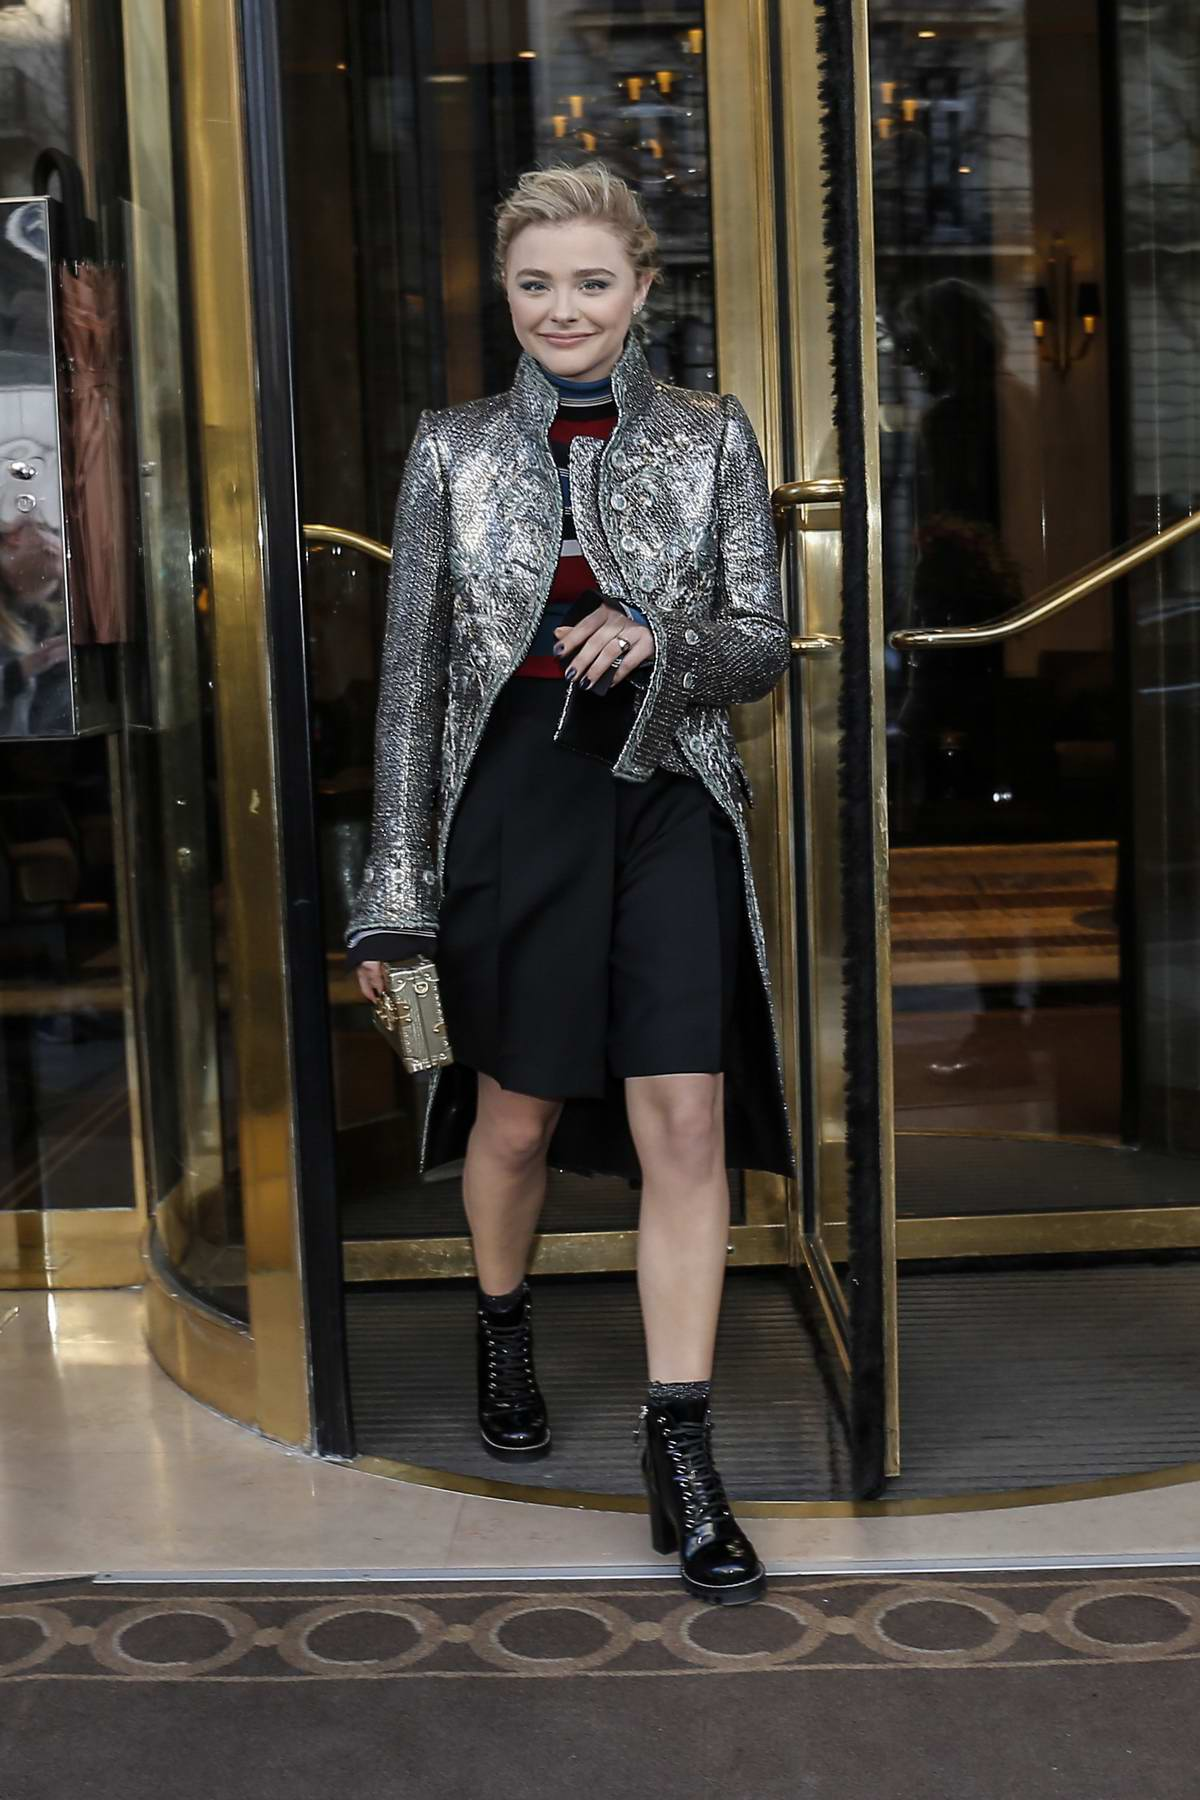 Chloe Grace Moretz leaves her hotel with her brother during Paris Fashion Week, France